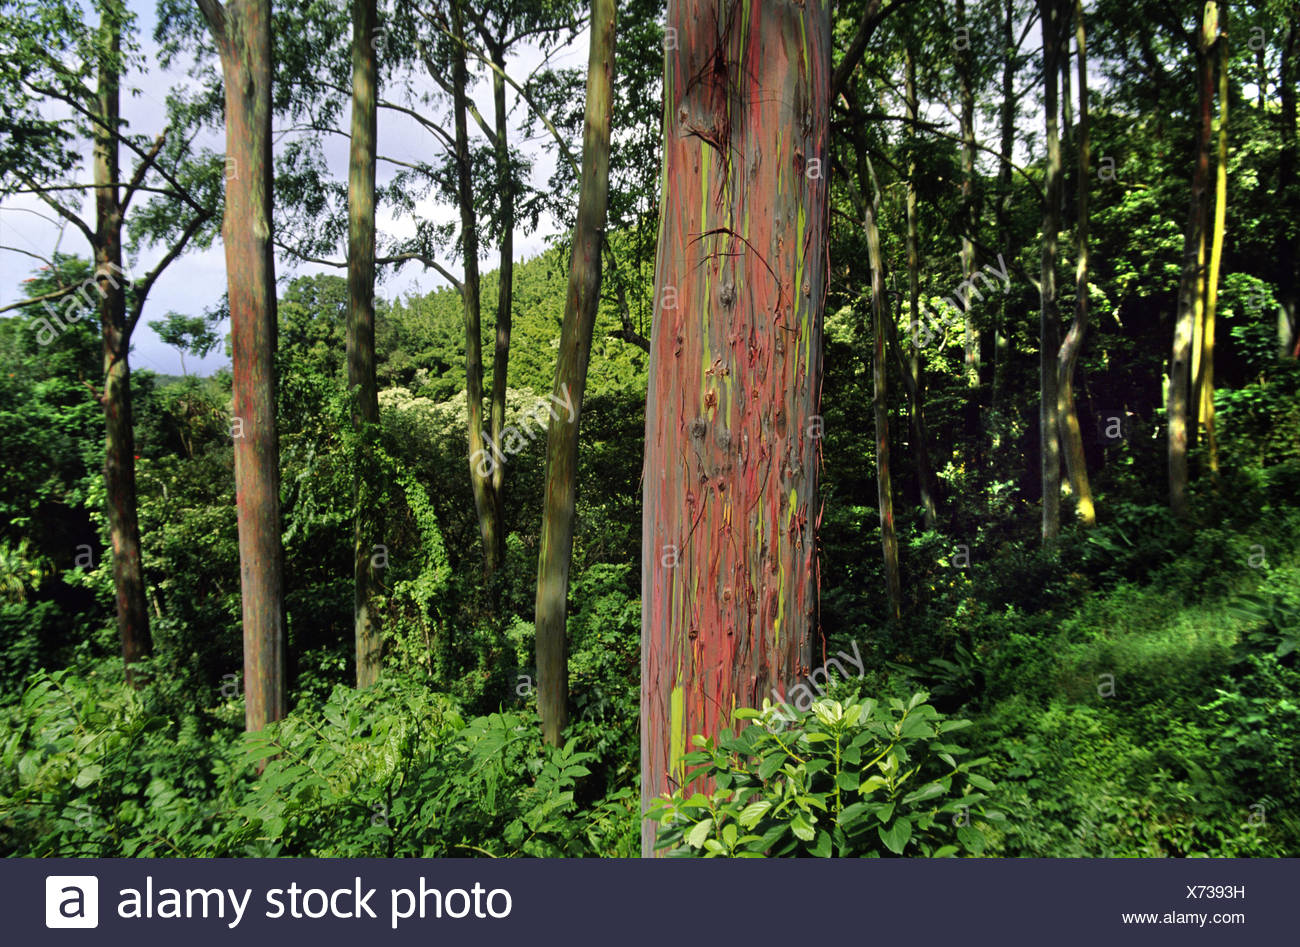 rainbow eucalyptus, Painted eucalyptus (Eucalyptus deglupta), The green and red bark is one of natures incredible visual deligh - Stock Image